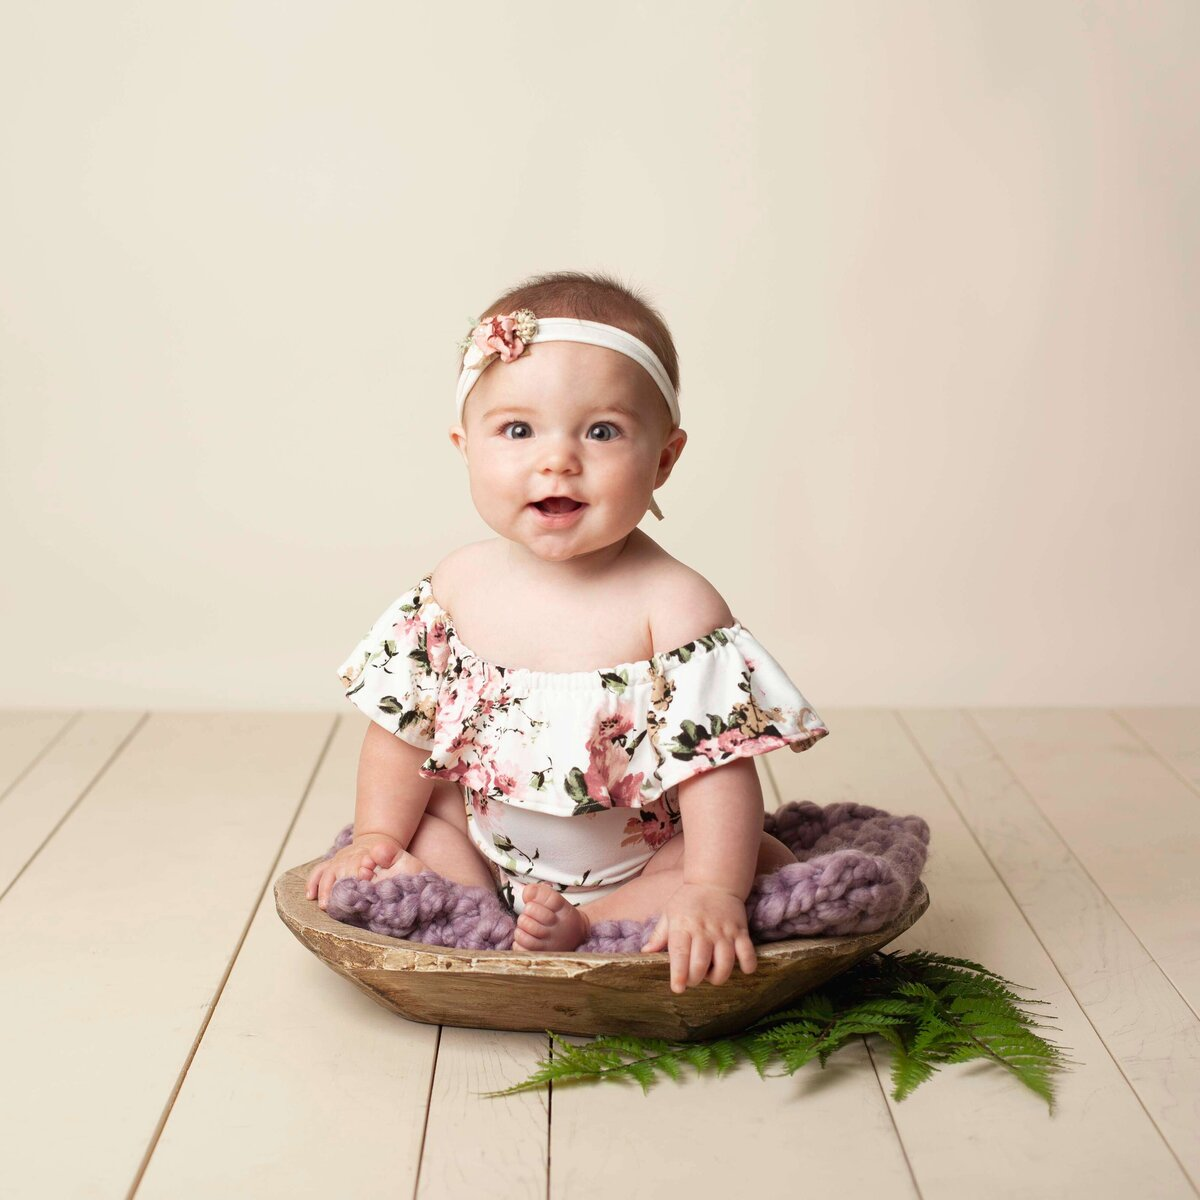 milestone baby sitter session flower outfit and headband in wooden bowl prop